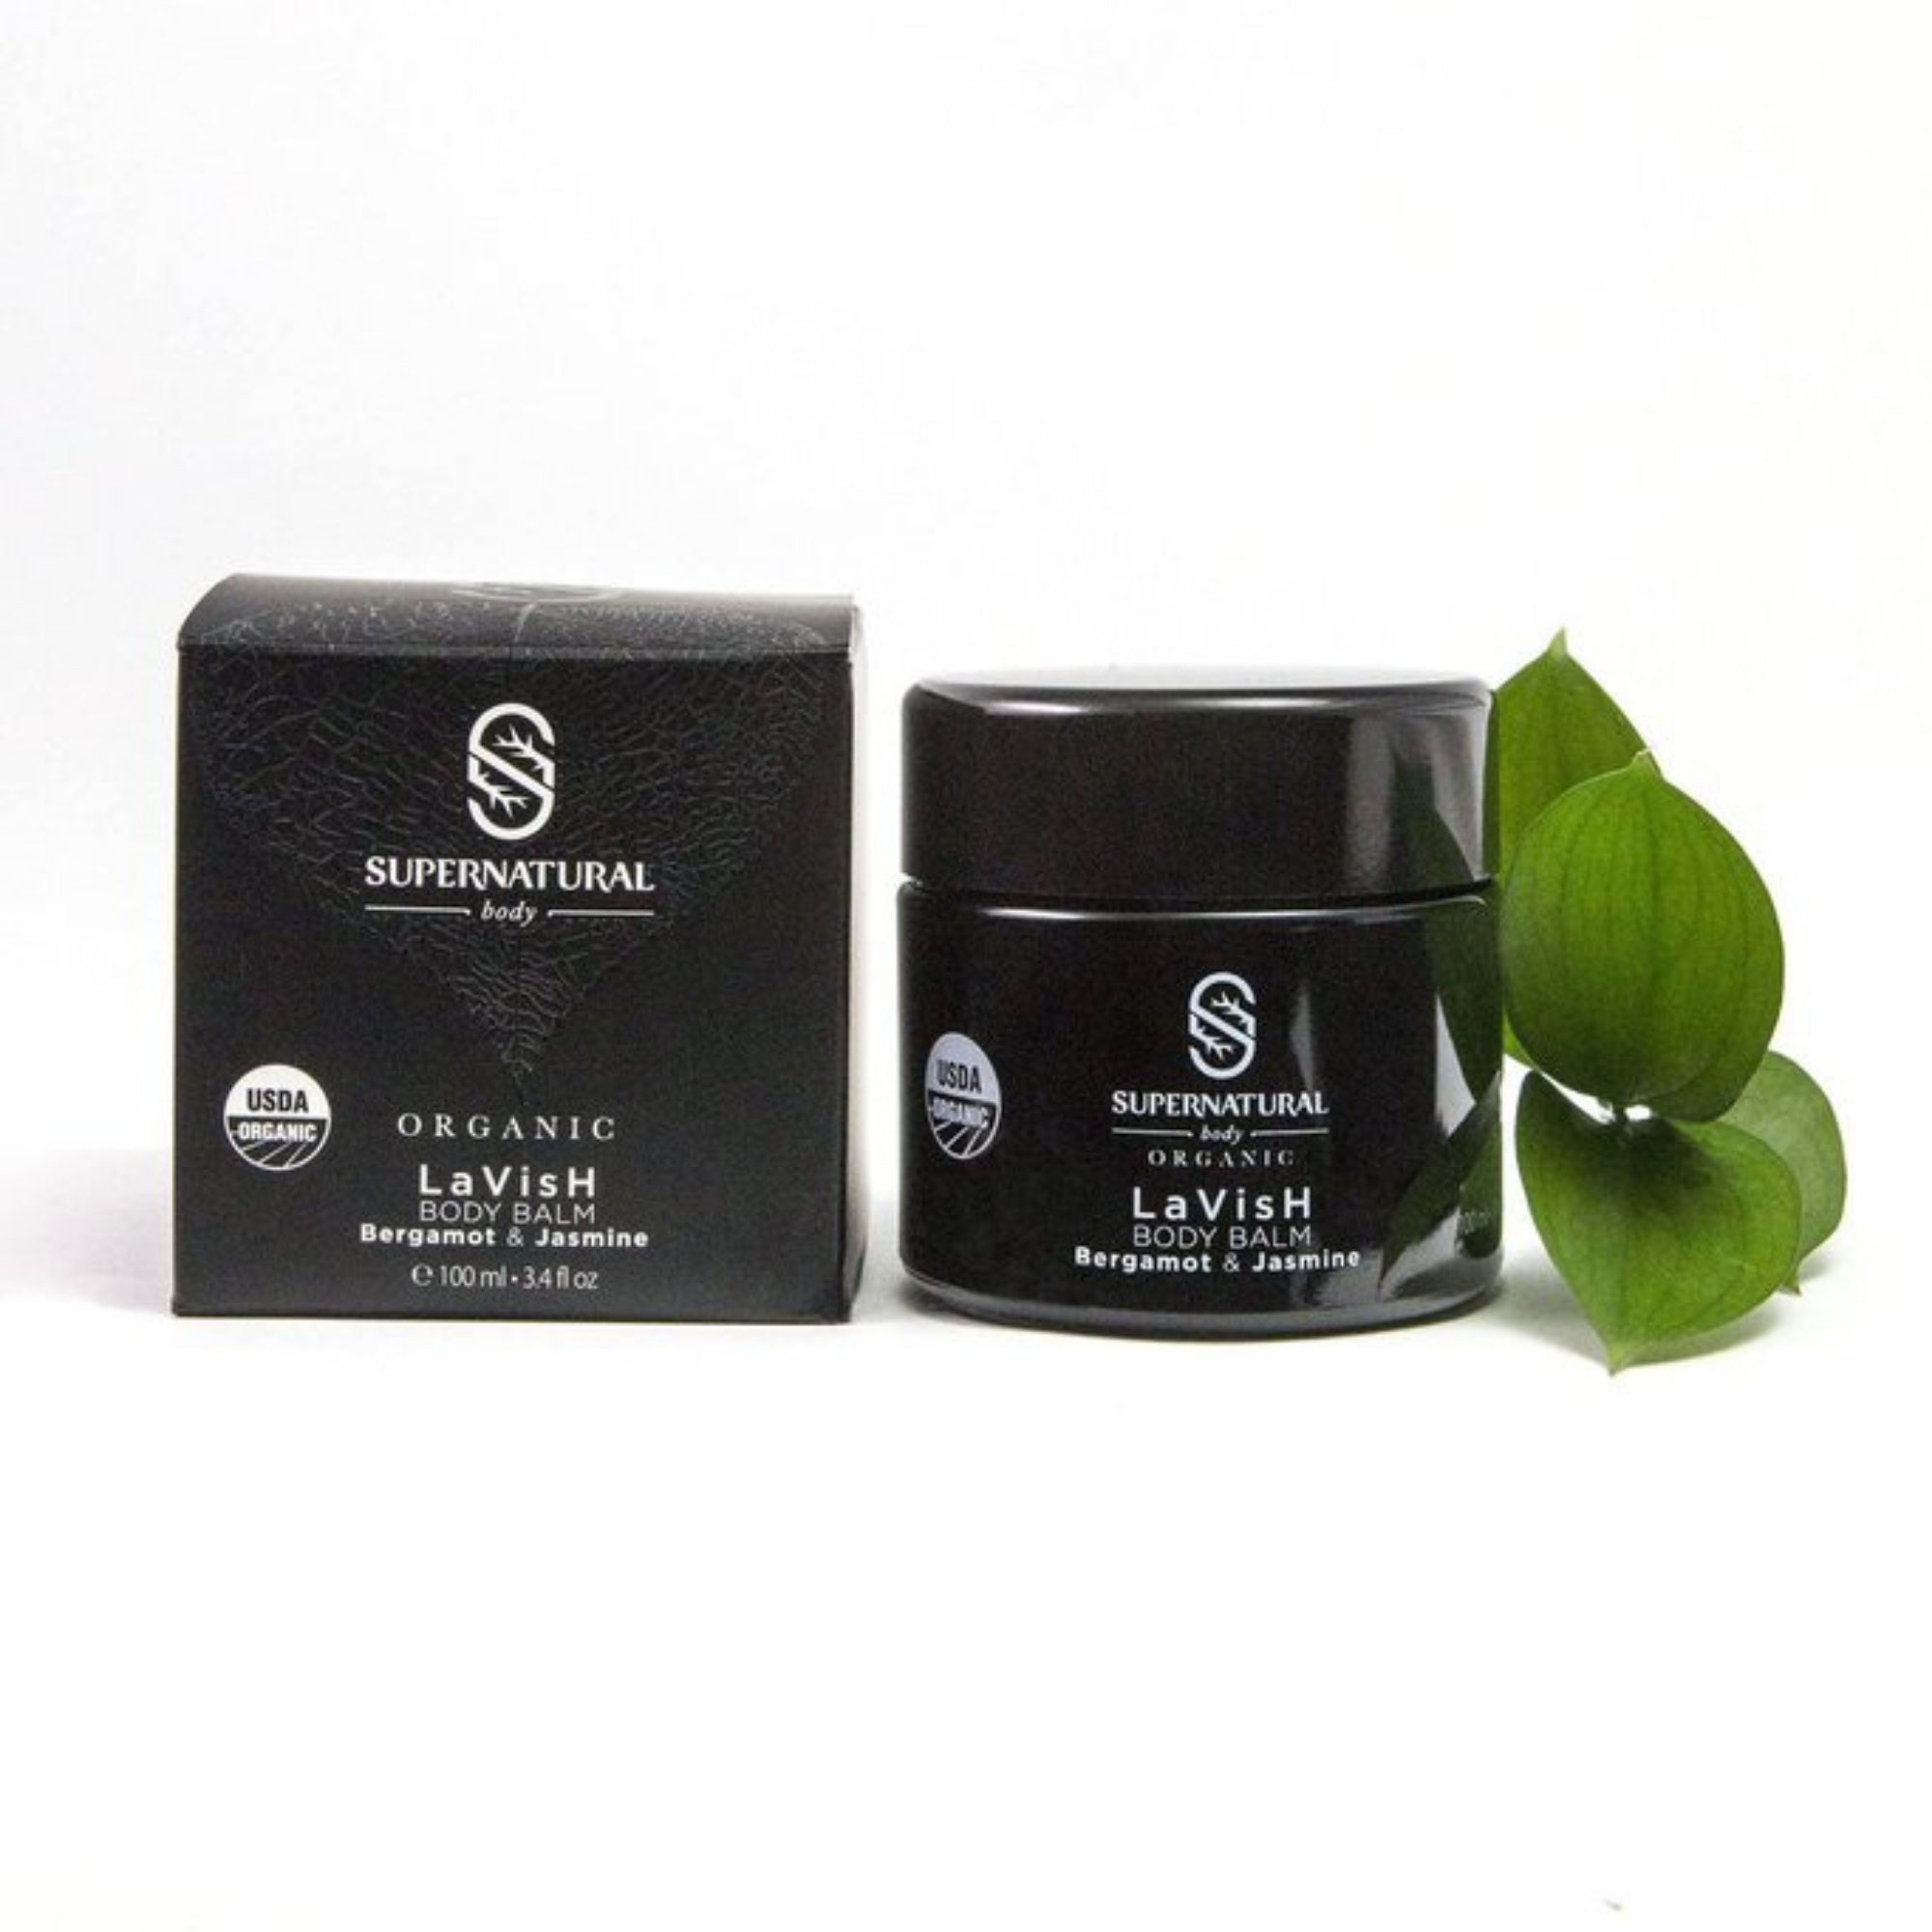 LavisH Body Butter - Bergamot and Jasmine